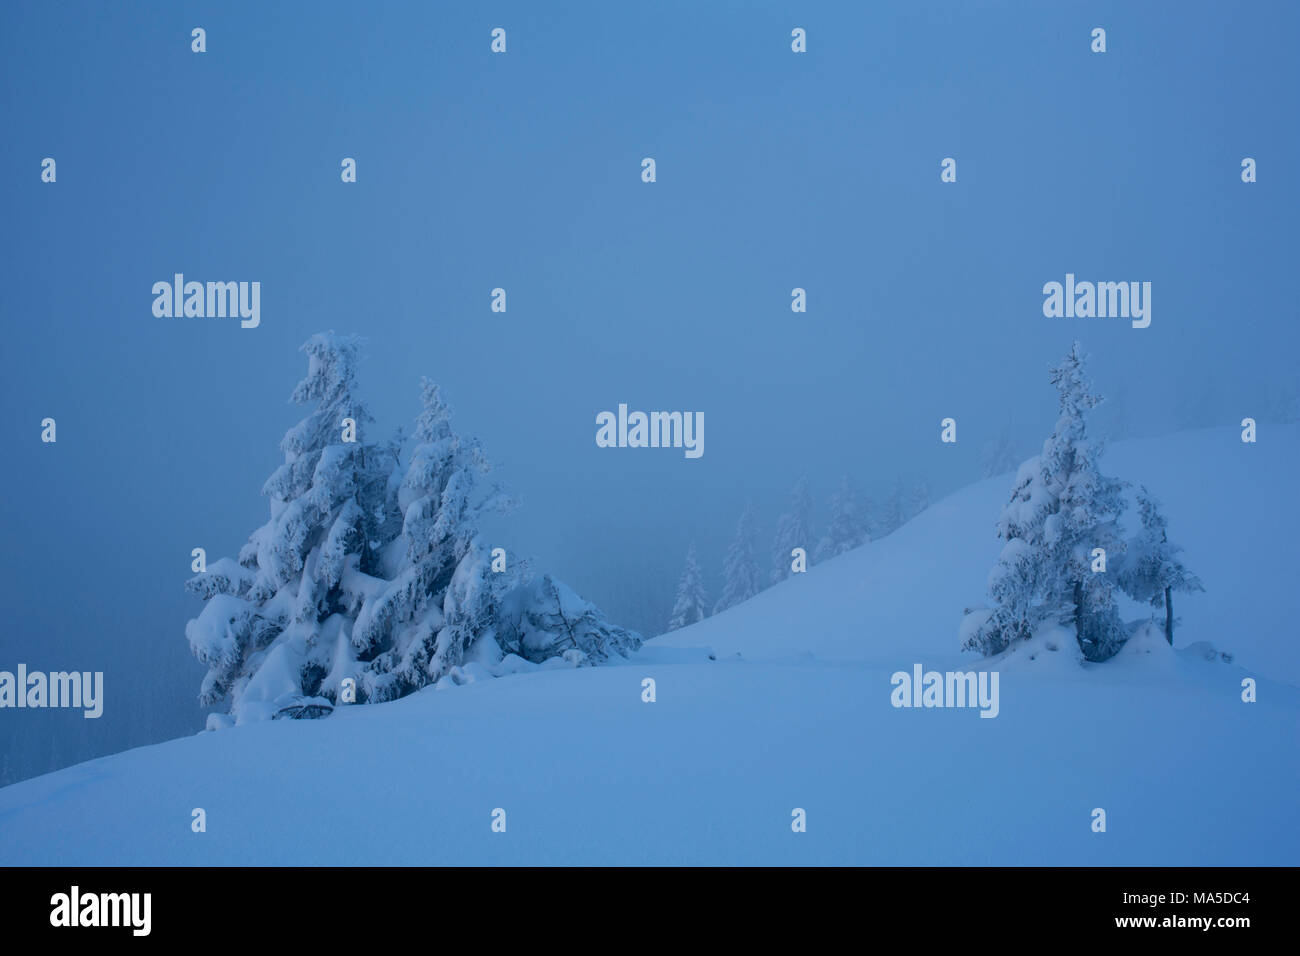 Snowy conifers at Hirschberg (mountain), Bavarian Alps, Bavaria, Germany. - Stock Image